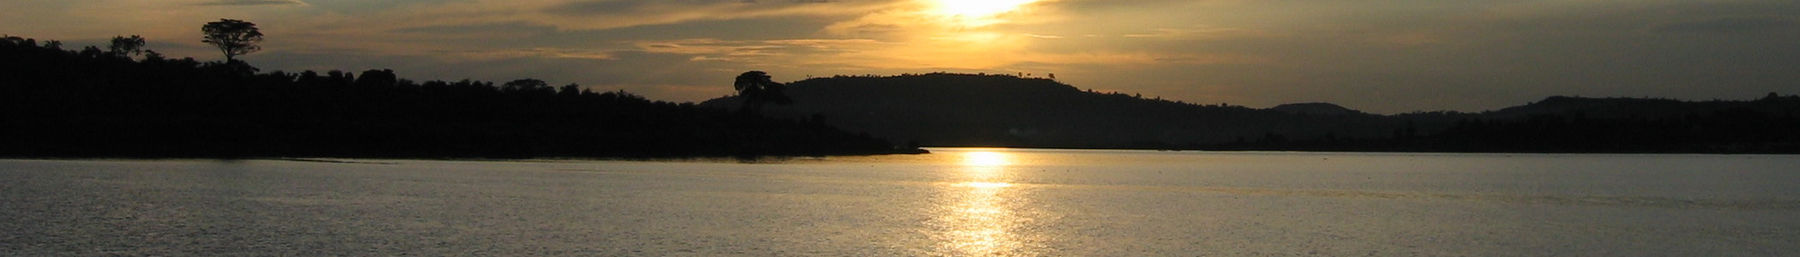 Uganda banner Sunset over Loke Victoria.jpg